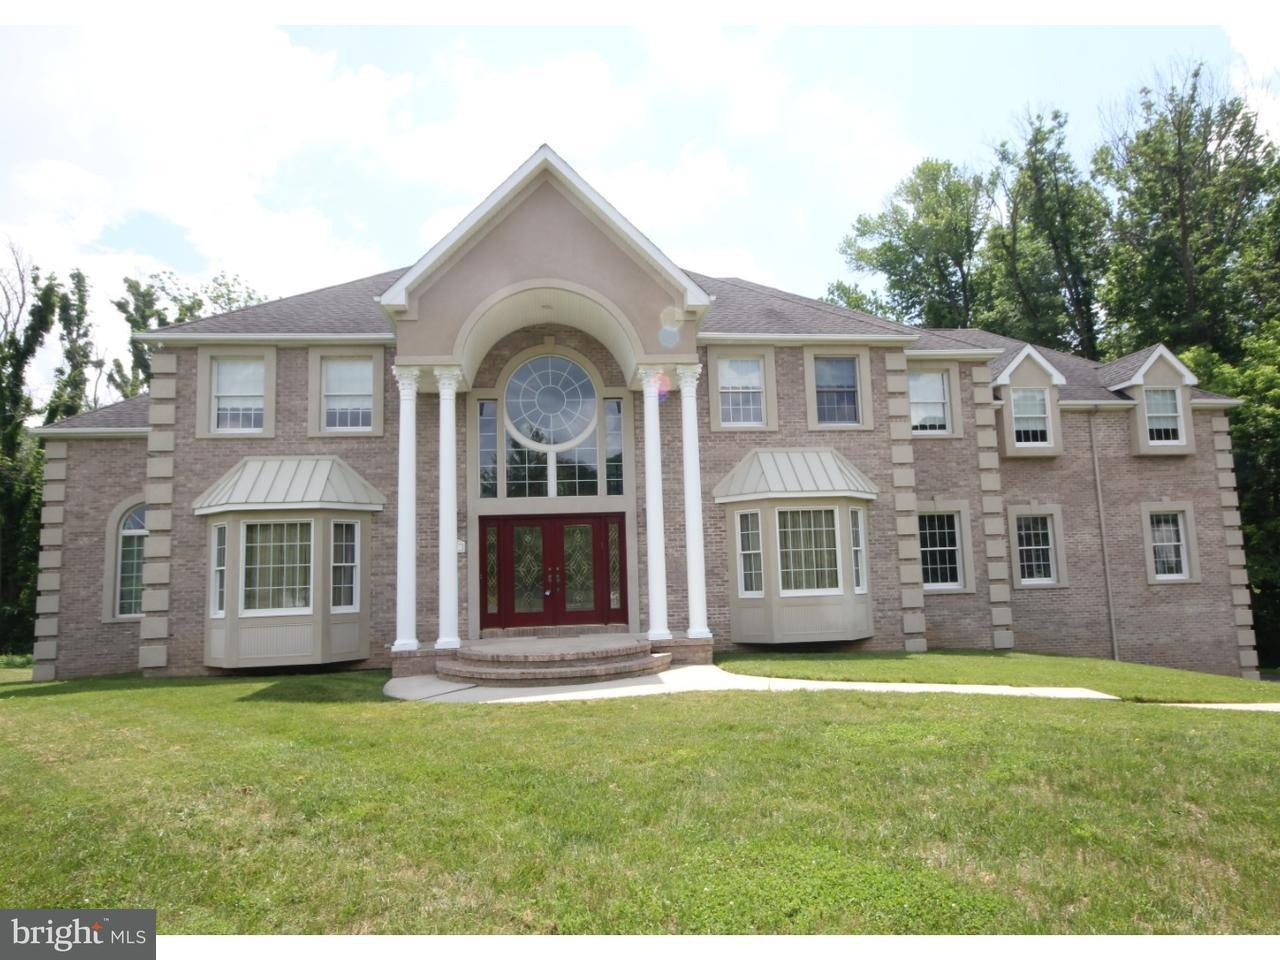 Single Family Home for Sale at 1 DEERPATH Lane Mansfield Township, New Jersey 08022 United States